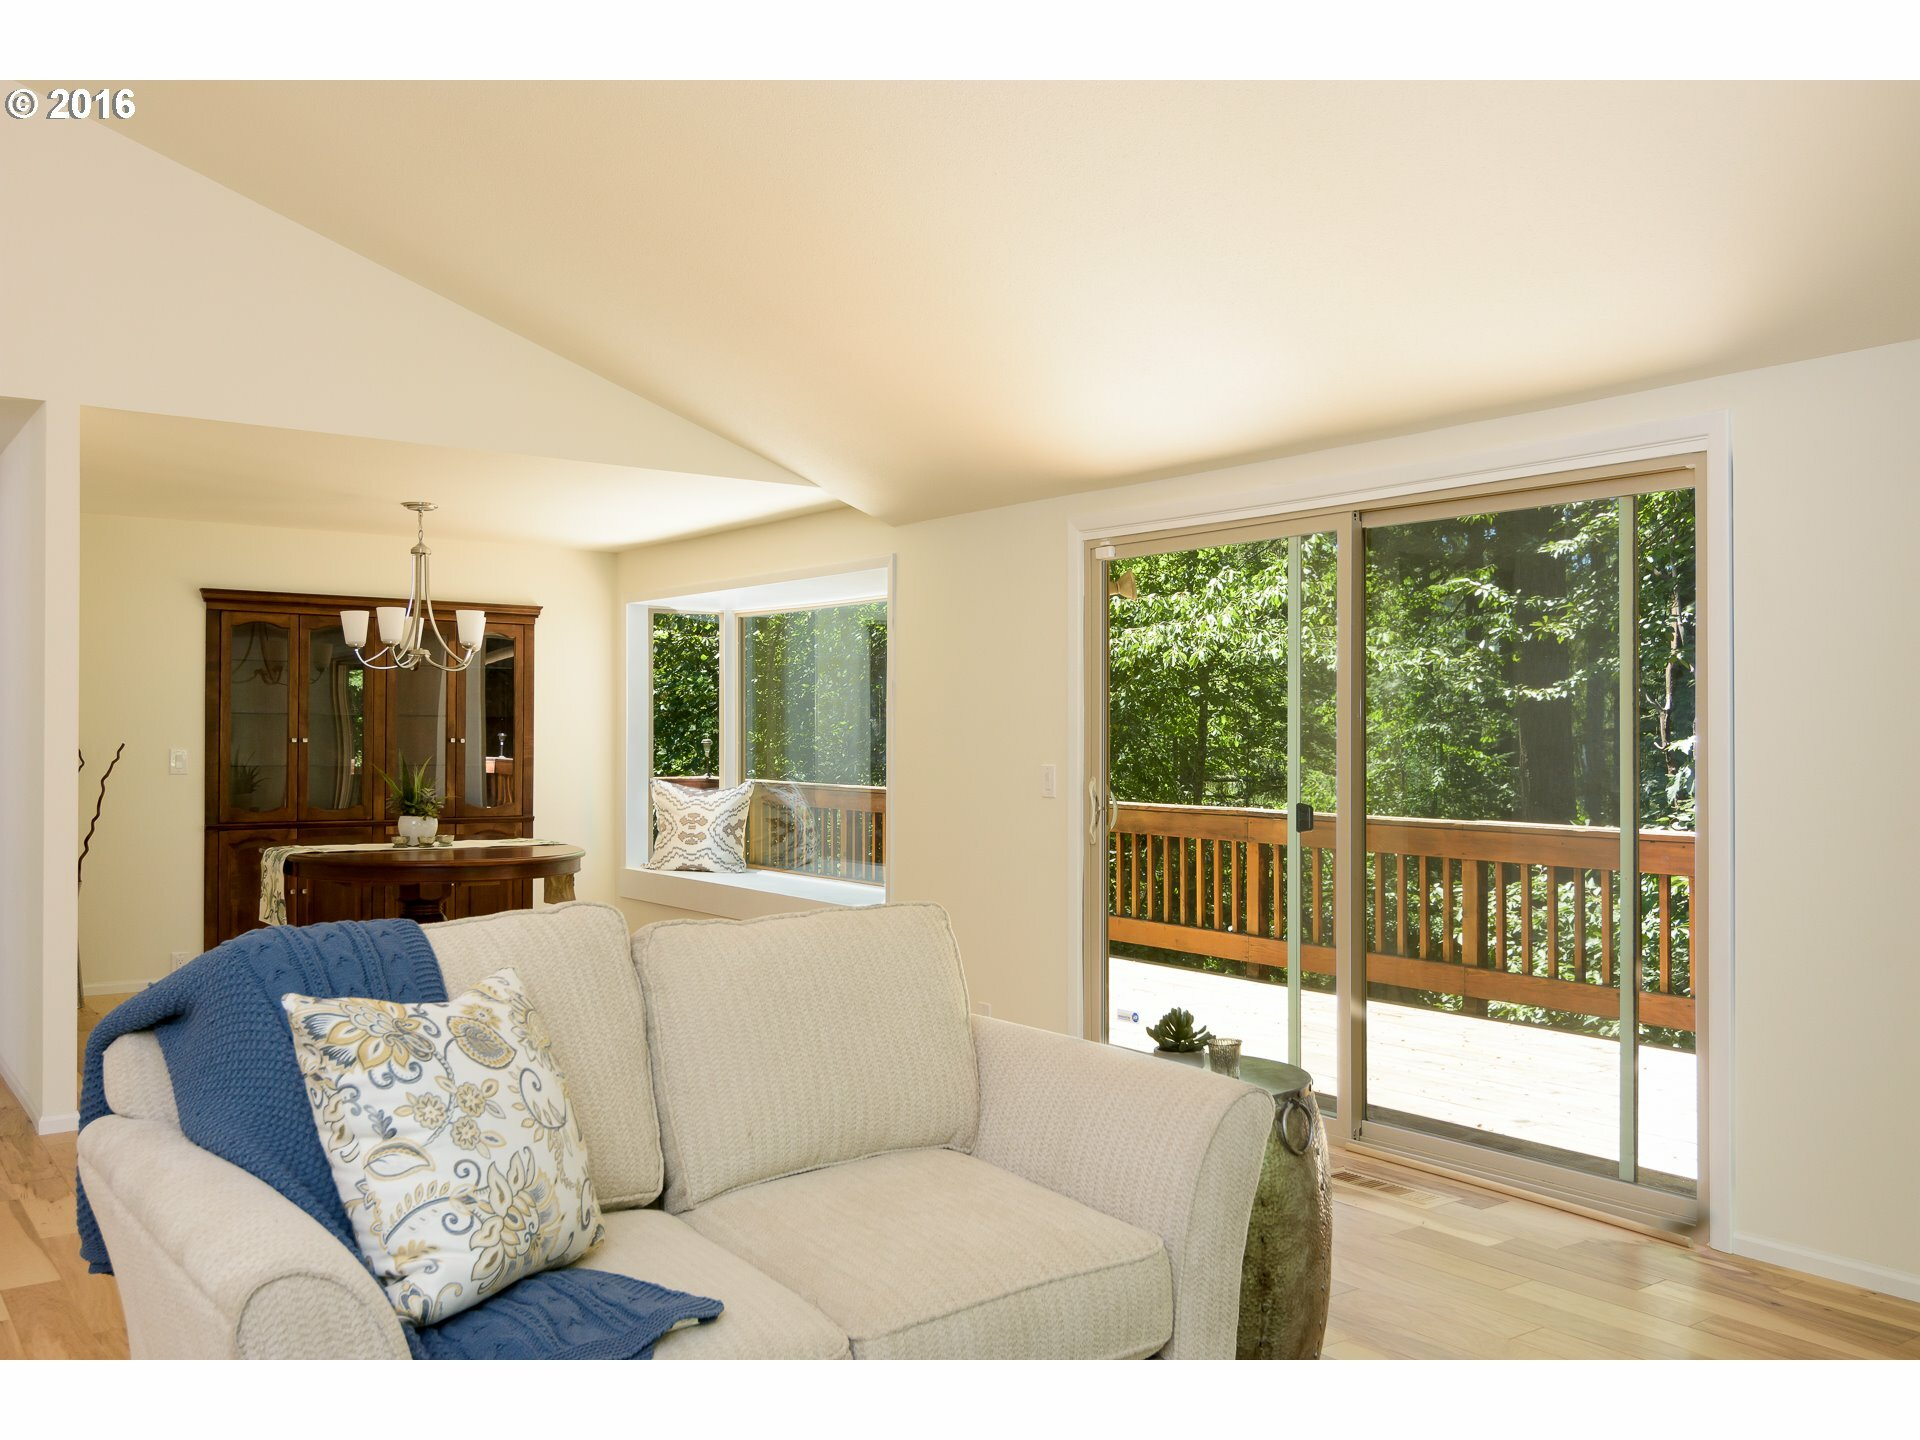 2575 Chaucer Ct, Eugene, OR - USA (photo 4)